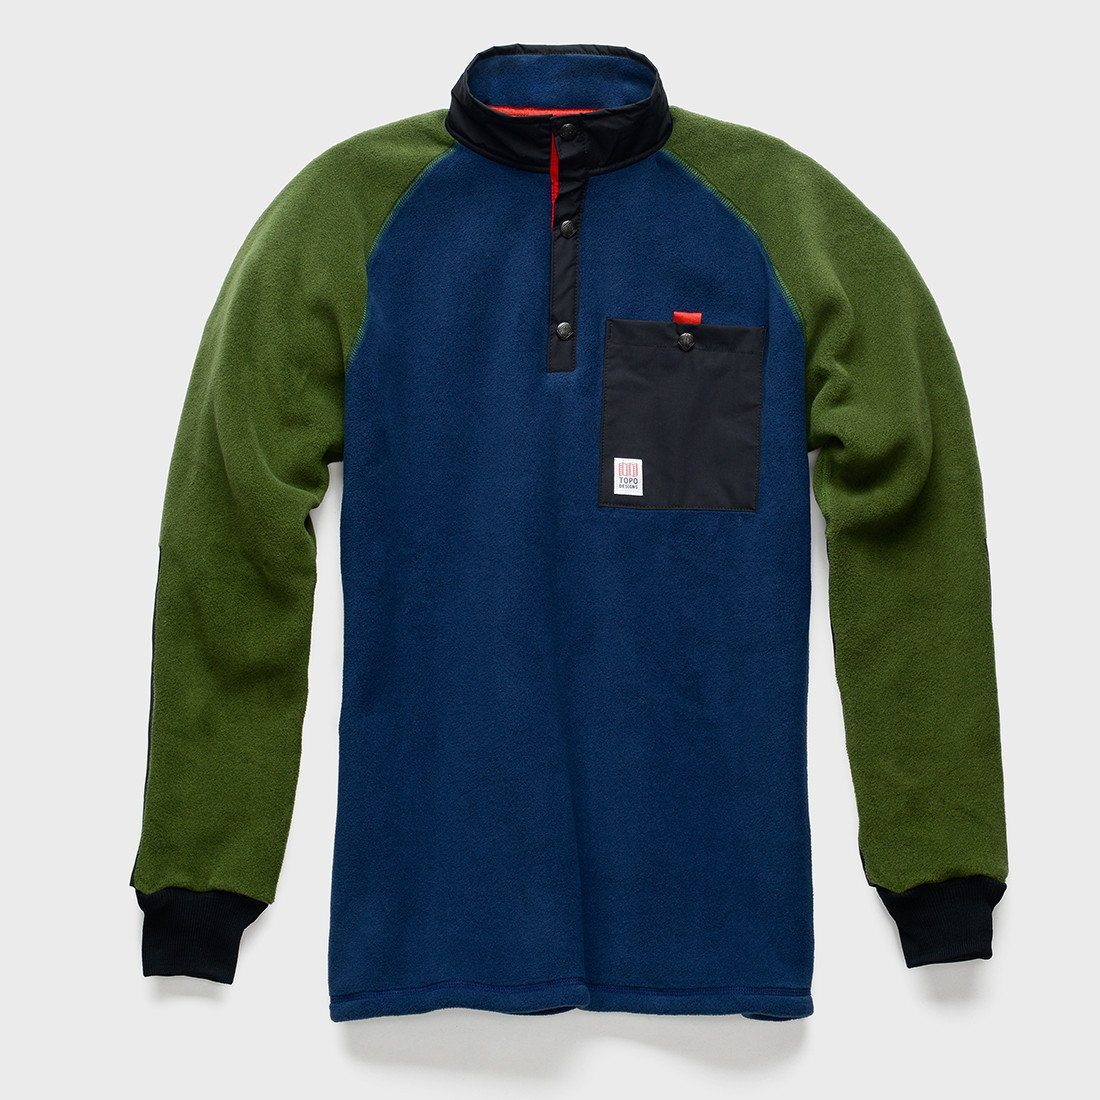 TOPO Designs Mountain Fleece Navy/Olive